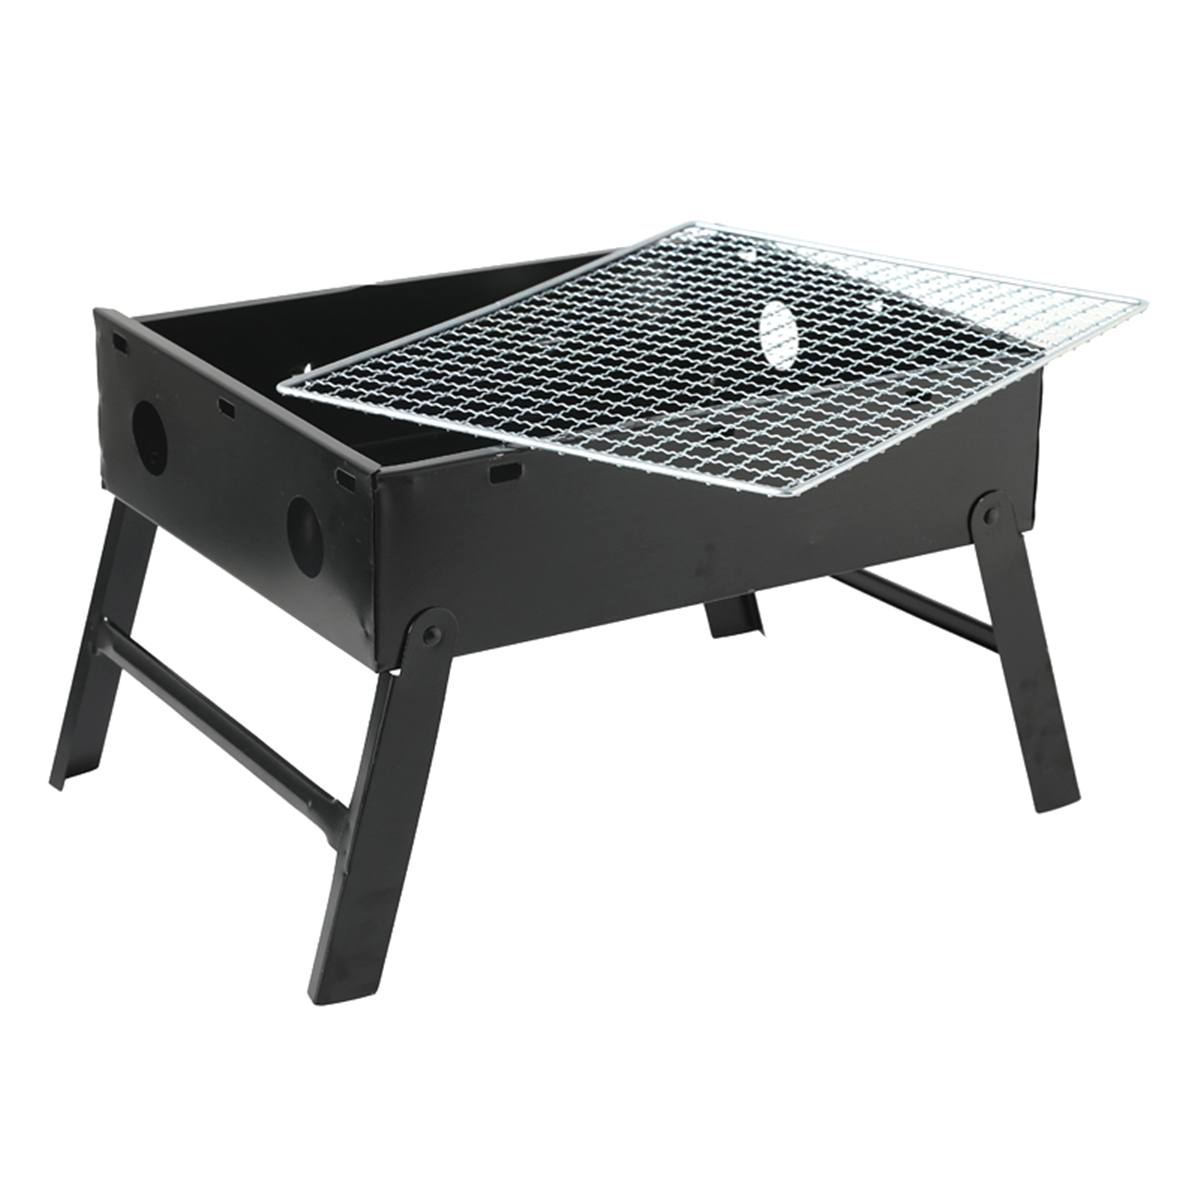 Portable BBQ Grill Folding Charcoal Barbecue Grills Camping Graden Outdoor Travel BBQ Tools Accessories Foldable Cookware